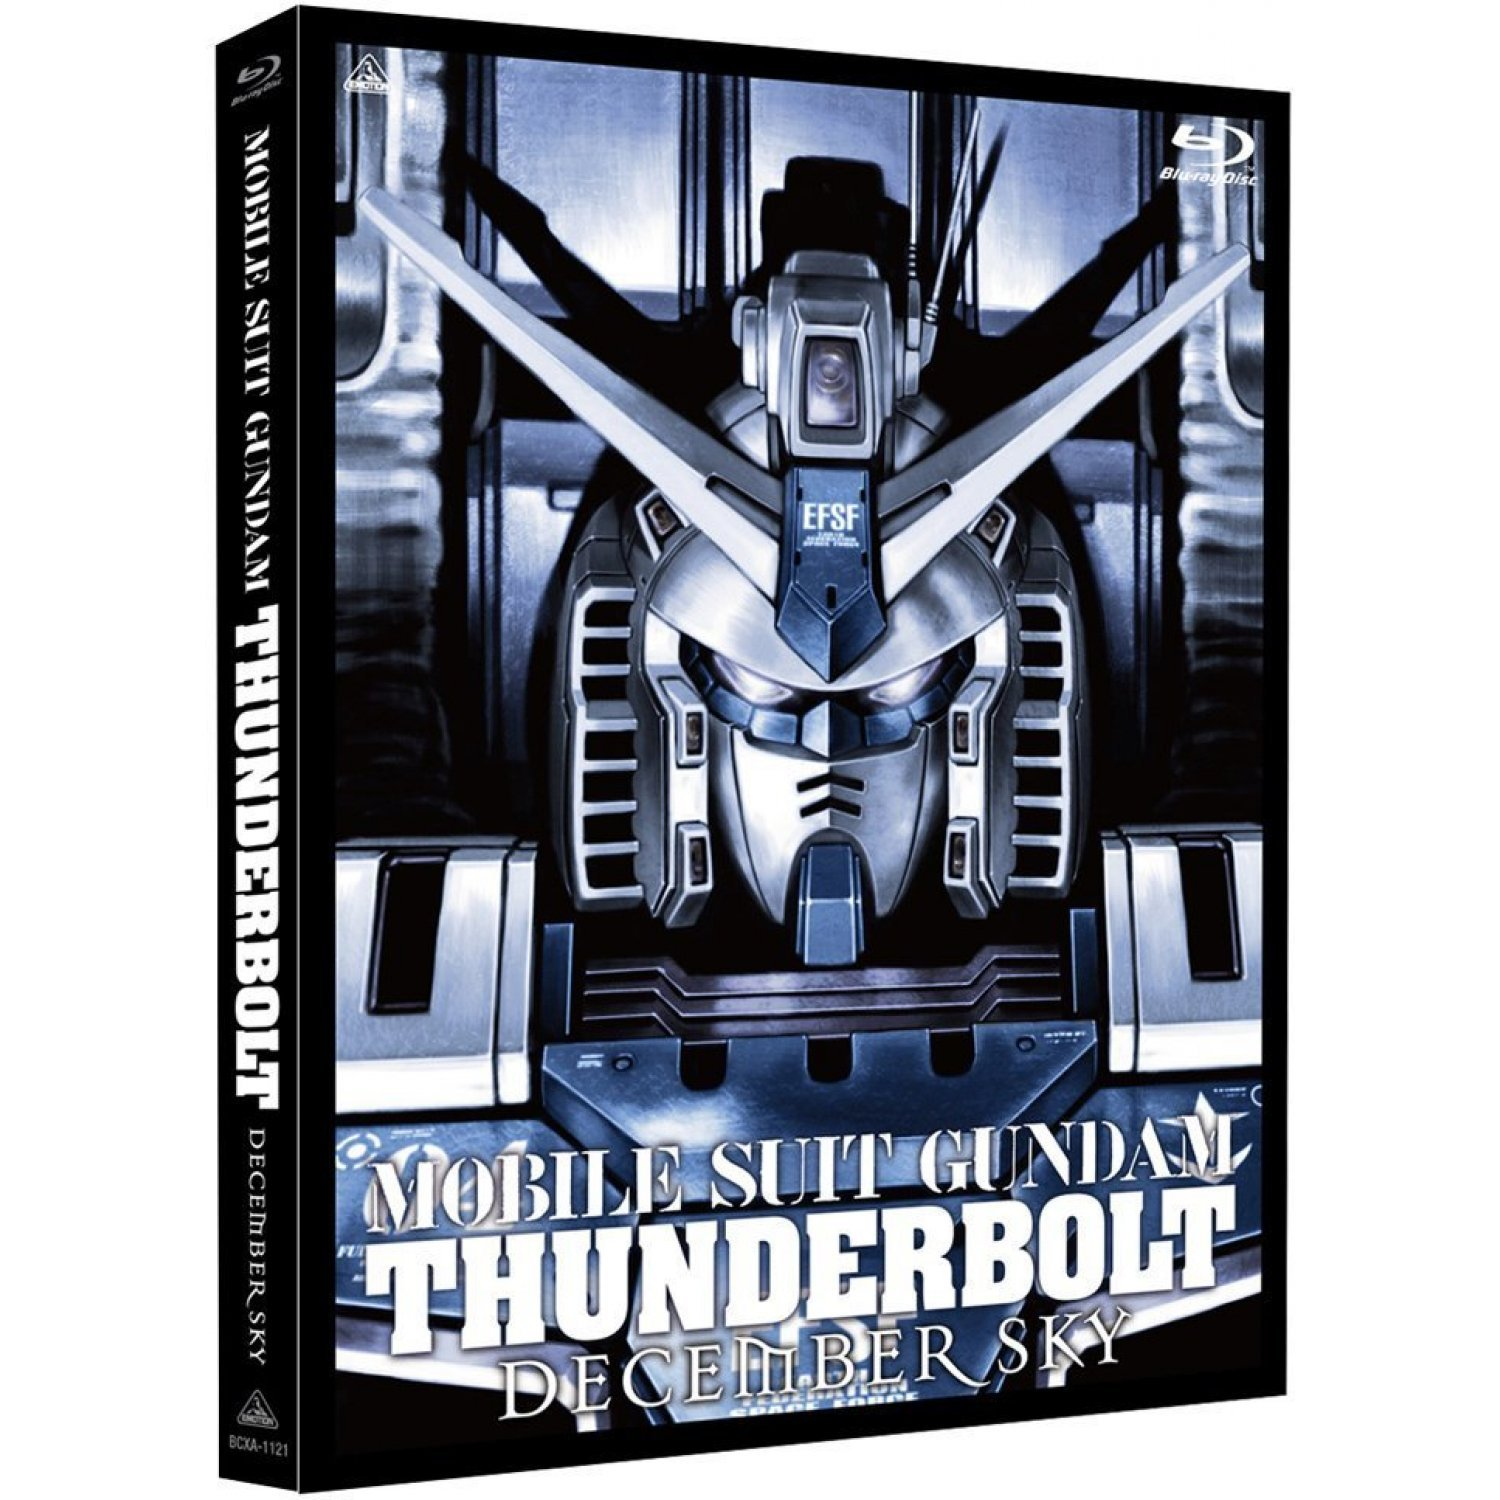 gundam thunderbolt december sky watch